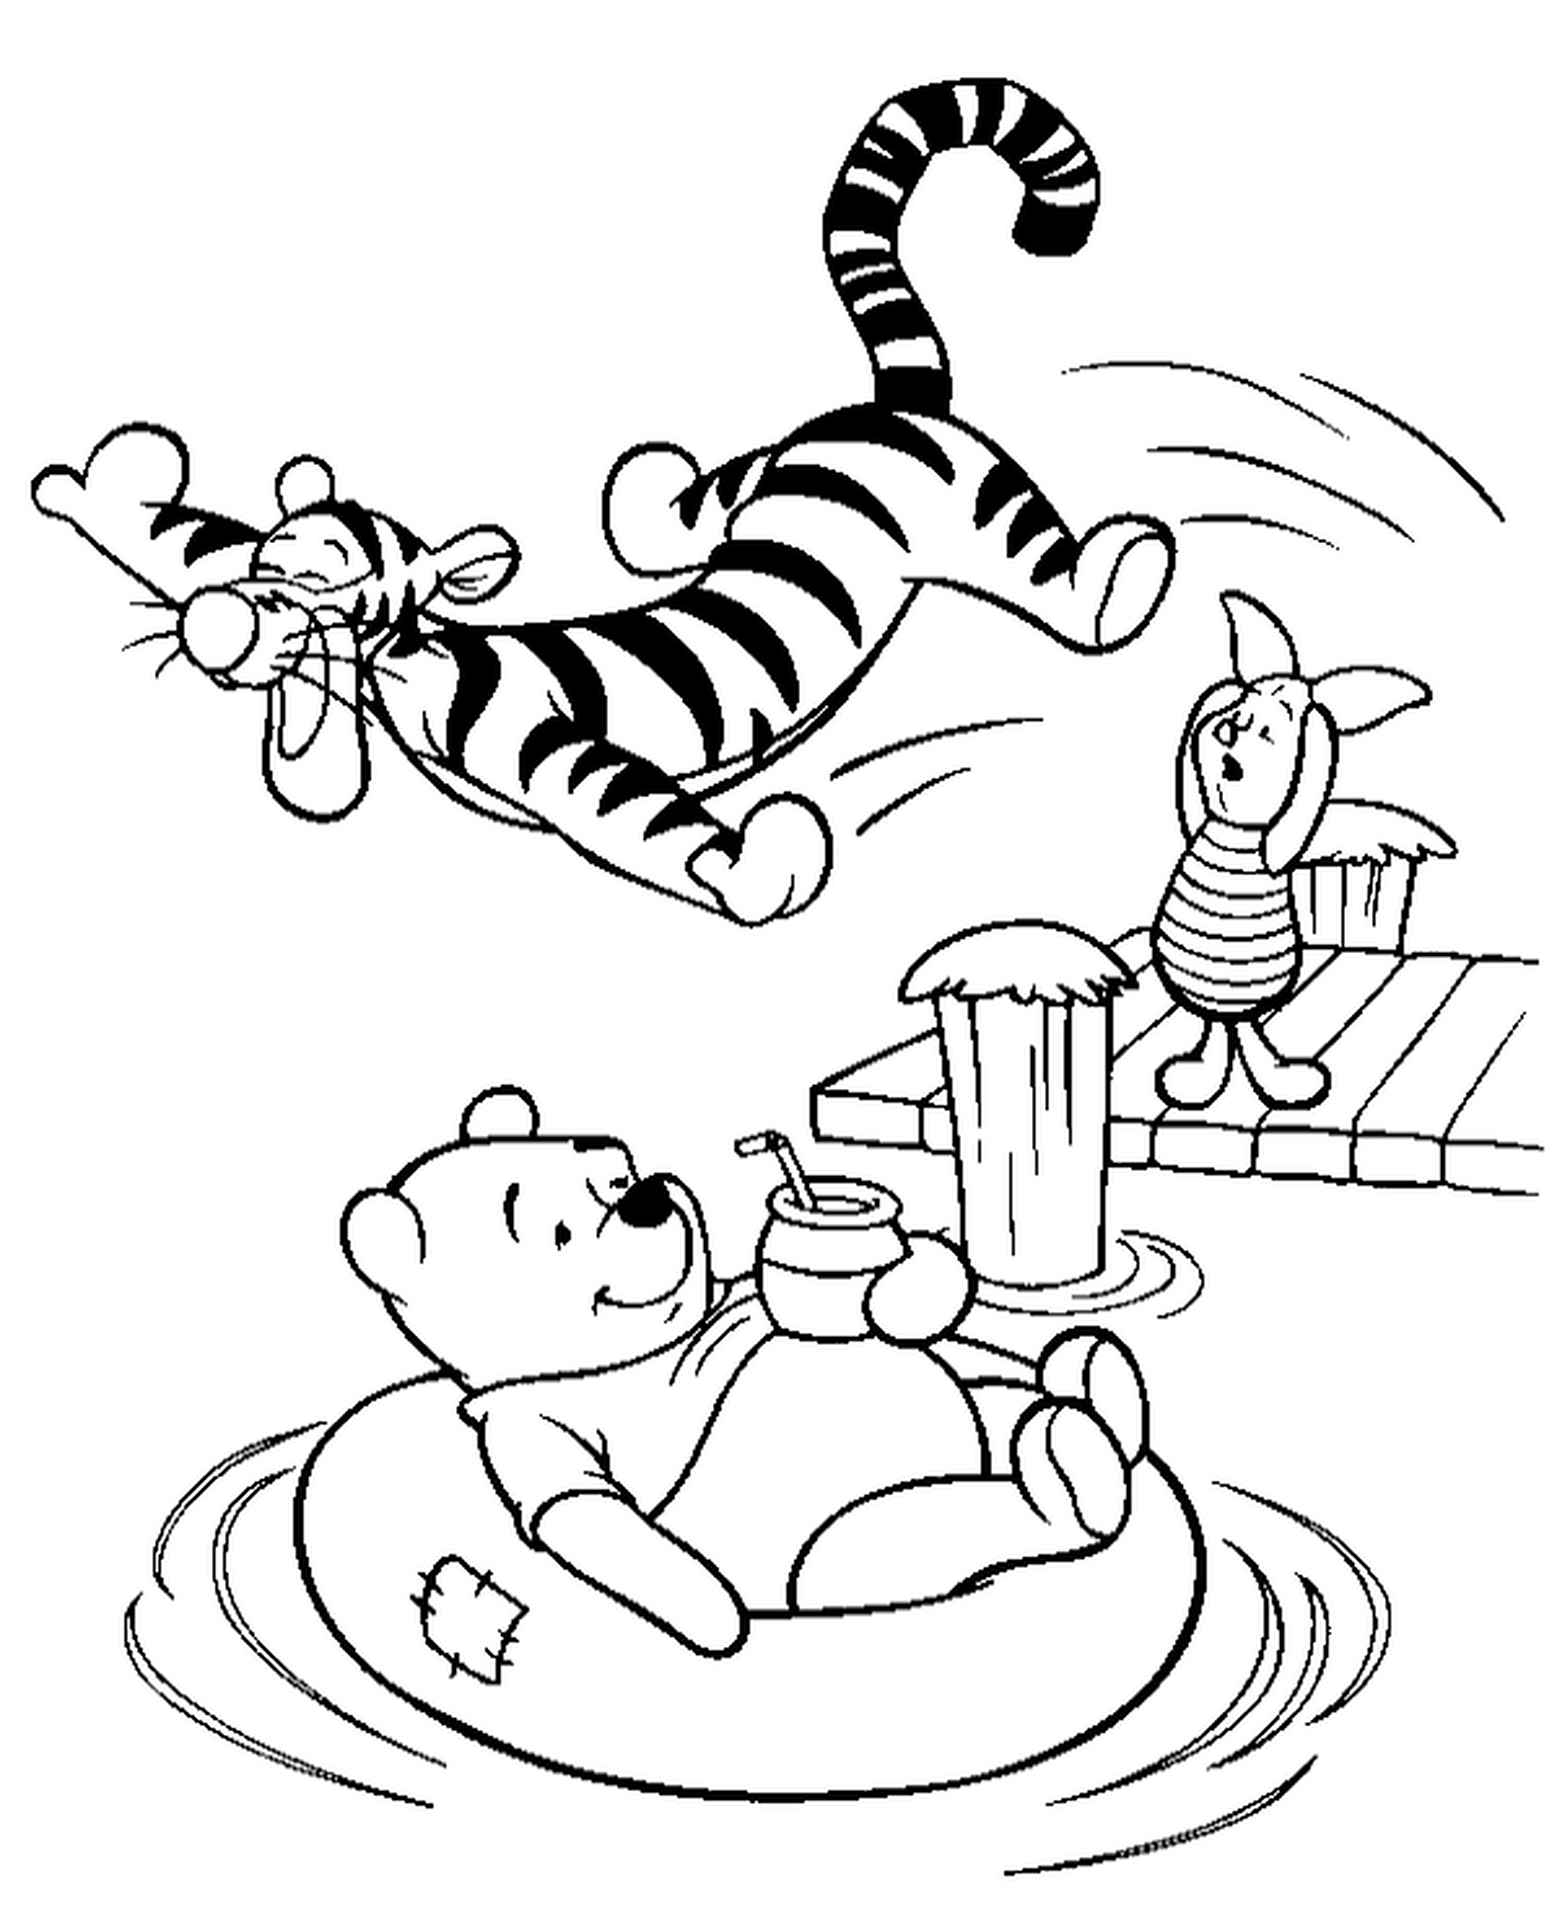 Winnie The Pooh, Piglet And Tigger